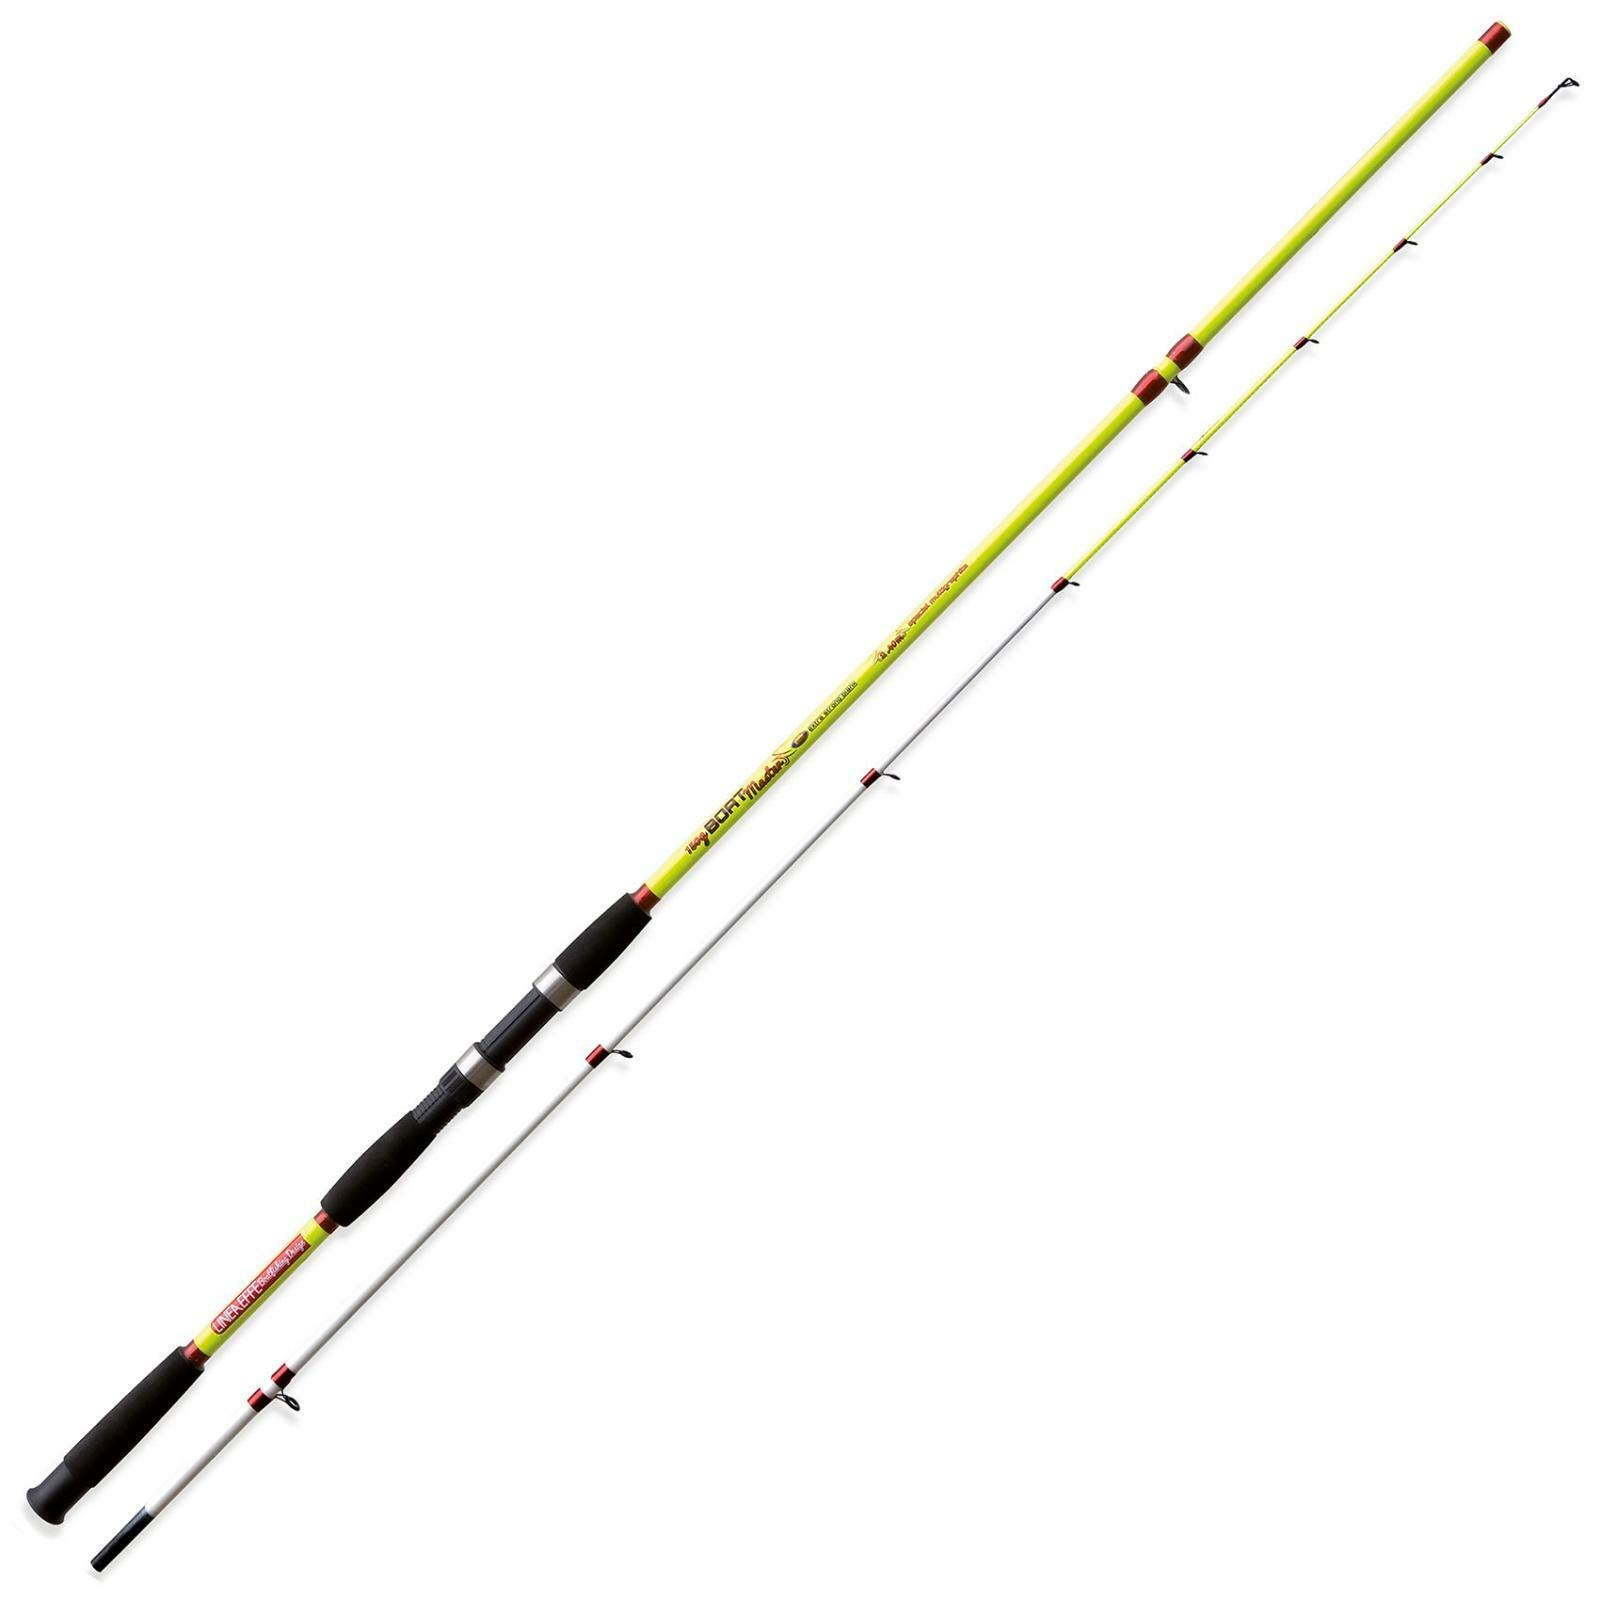 2230024 Canna Lineaeffe Boat Master 2,40 m 150 Gr Pesca Bolentino Light Jig RNG